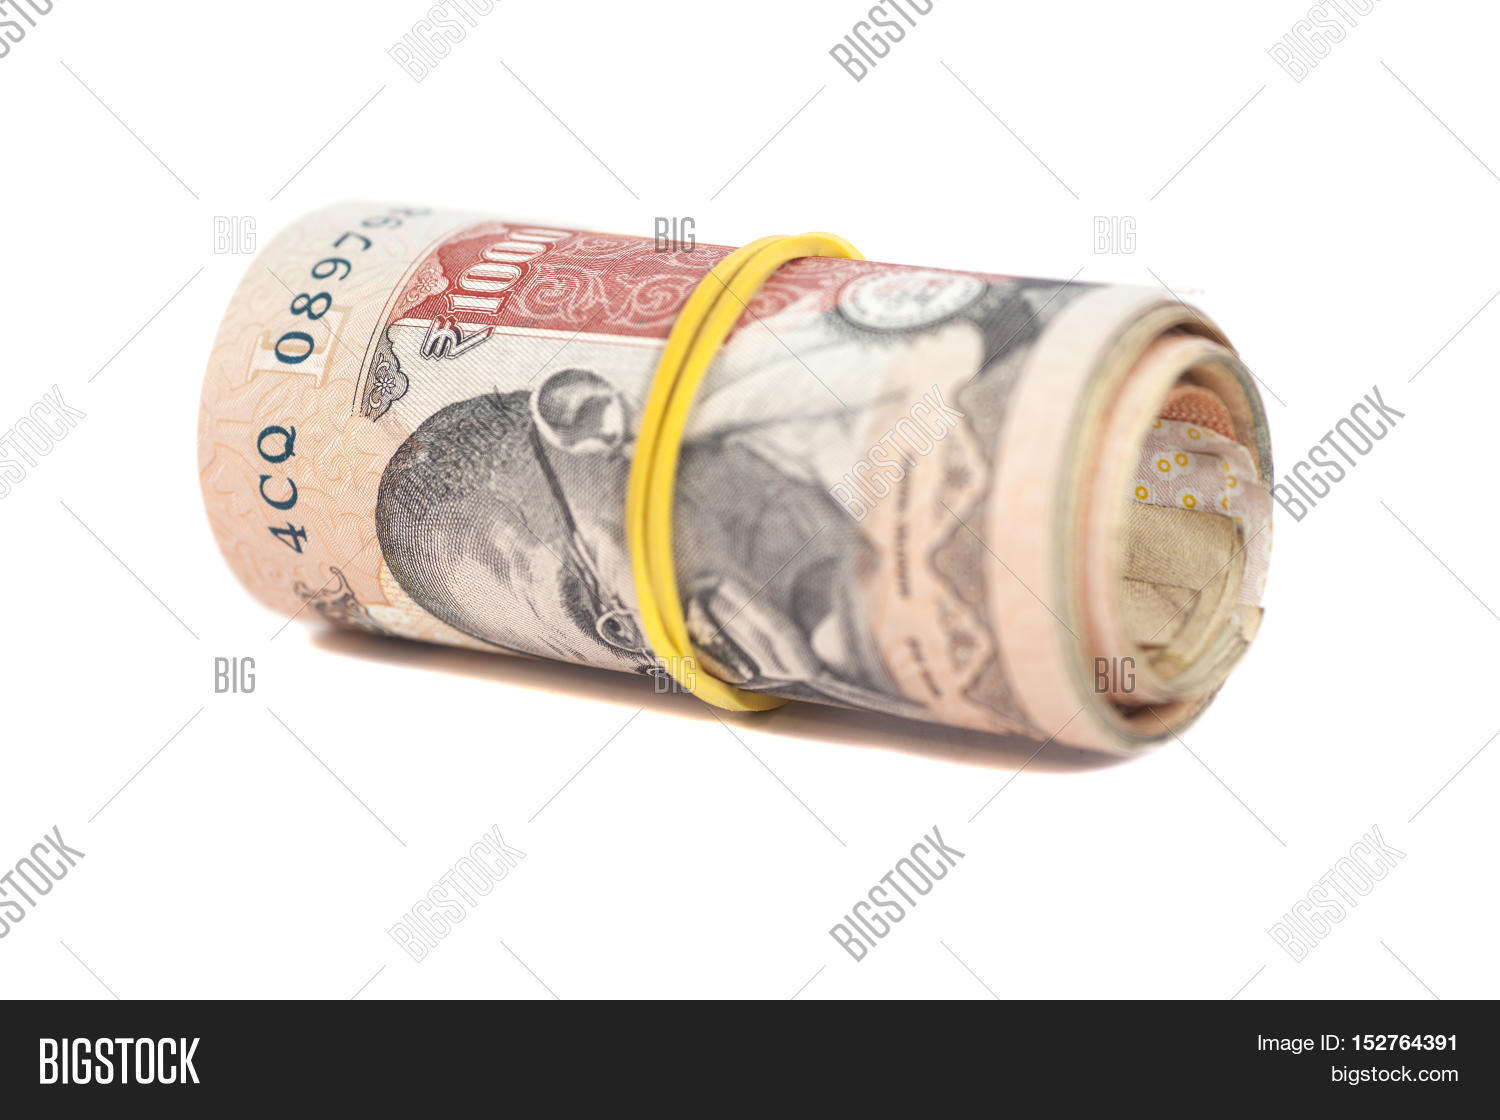 Roll Indian Rupees Image & Photo (Free Trial) | Bigstock